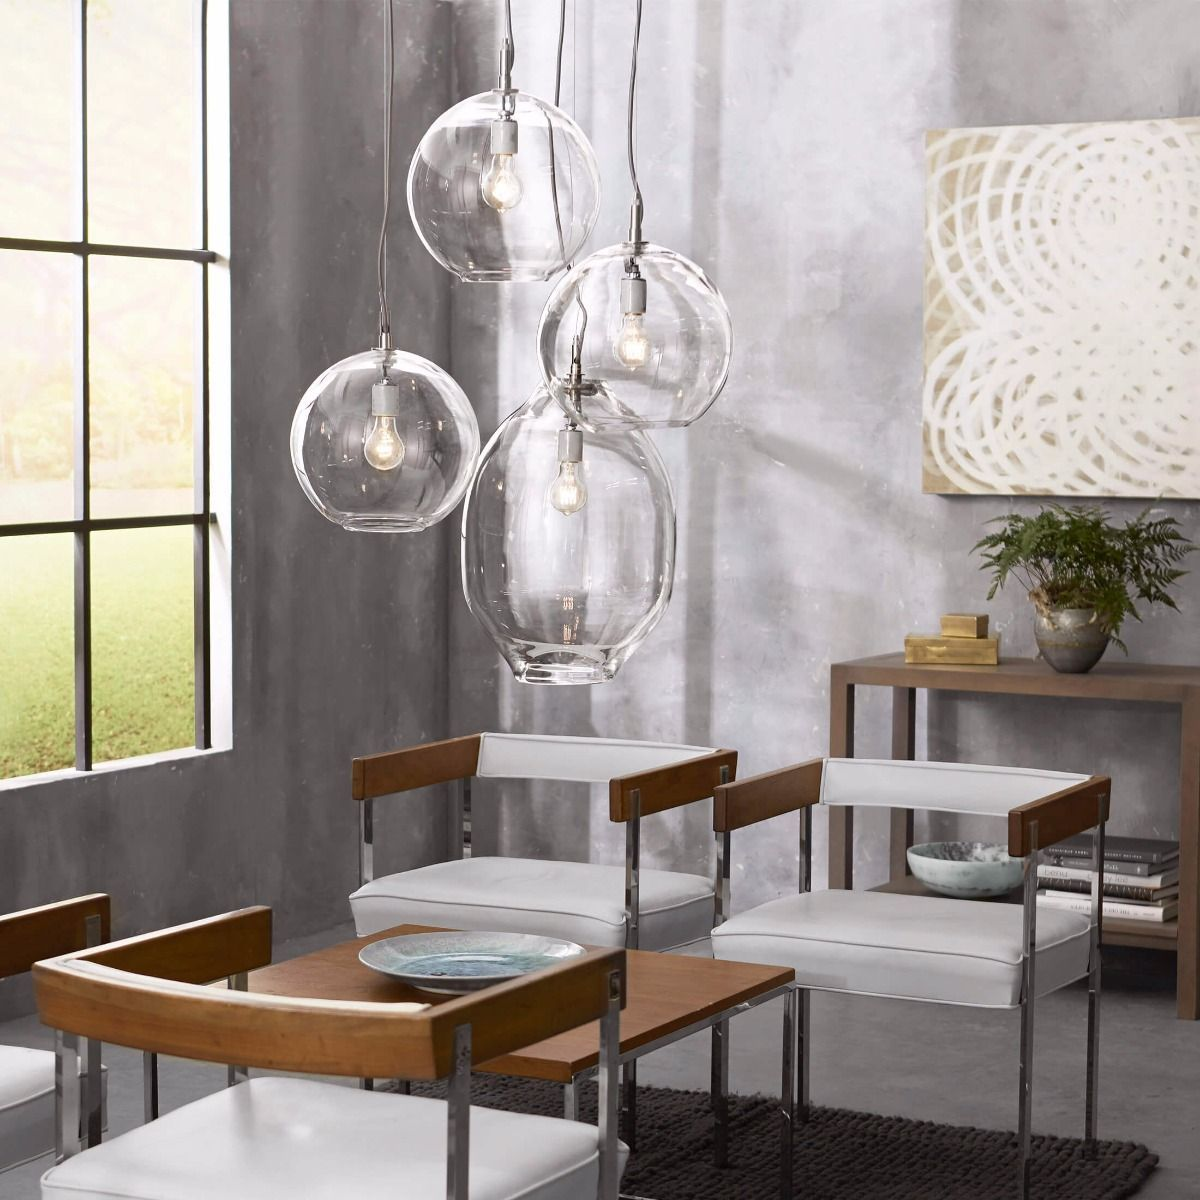 Simon Pearce Pendant Light Look At Other Photos To Choose